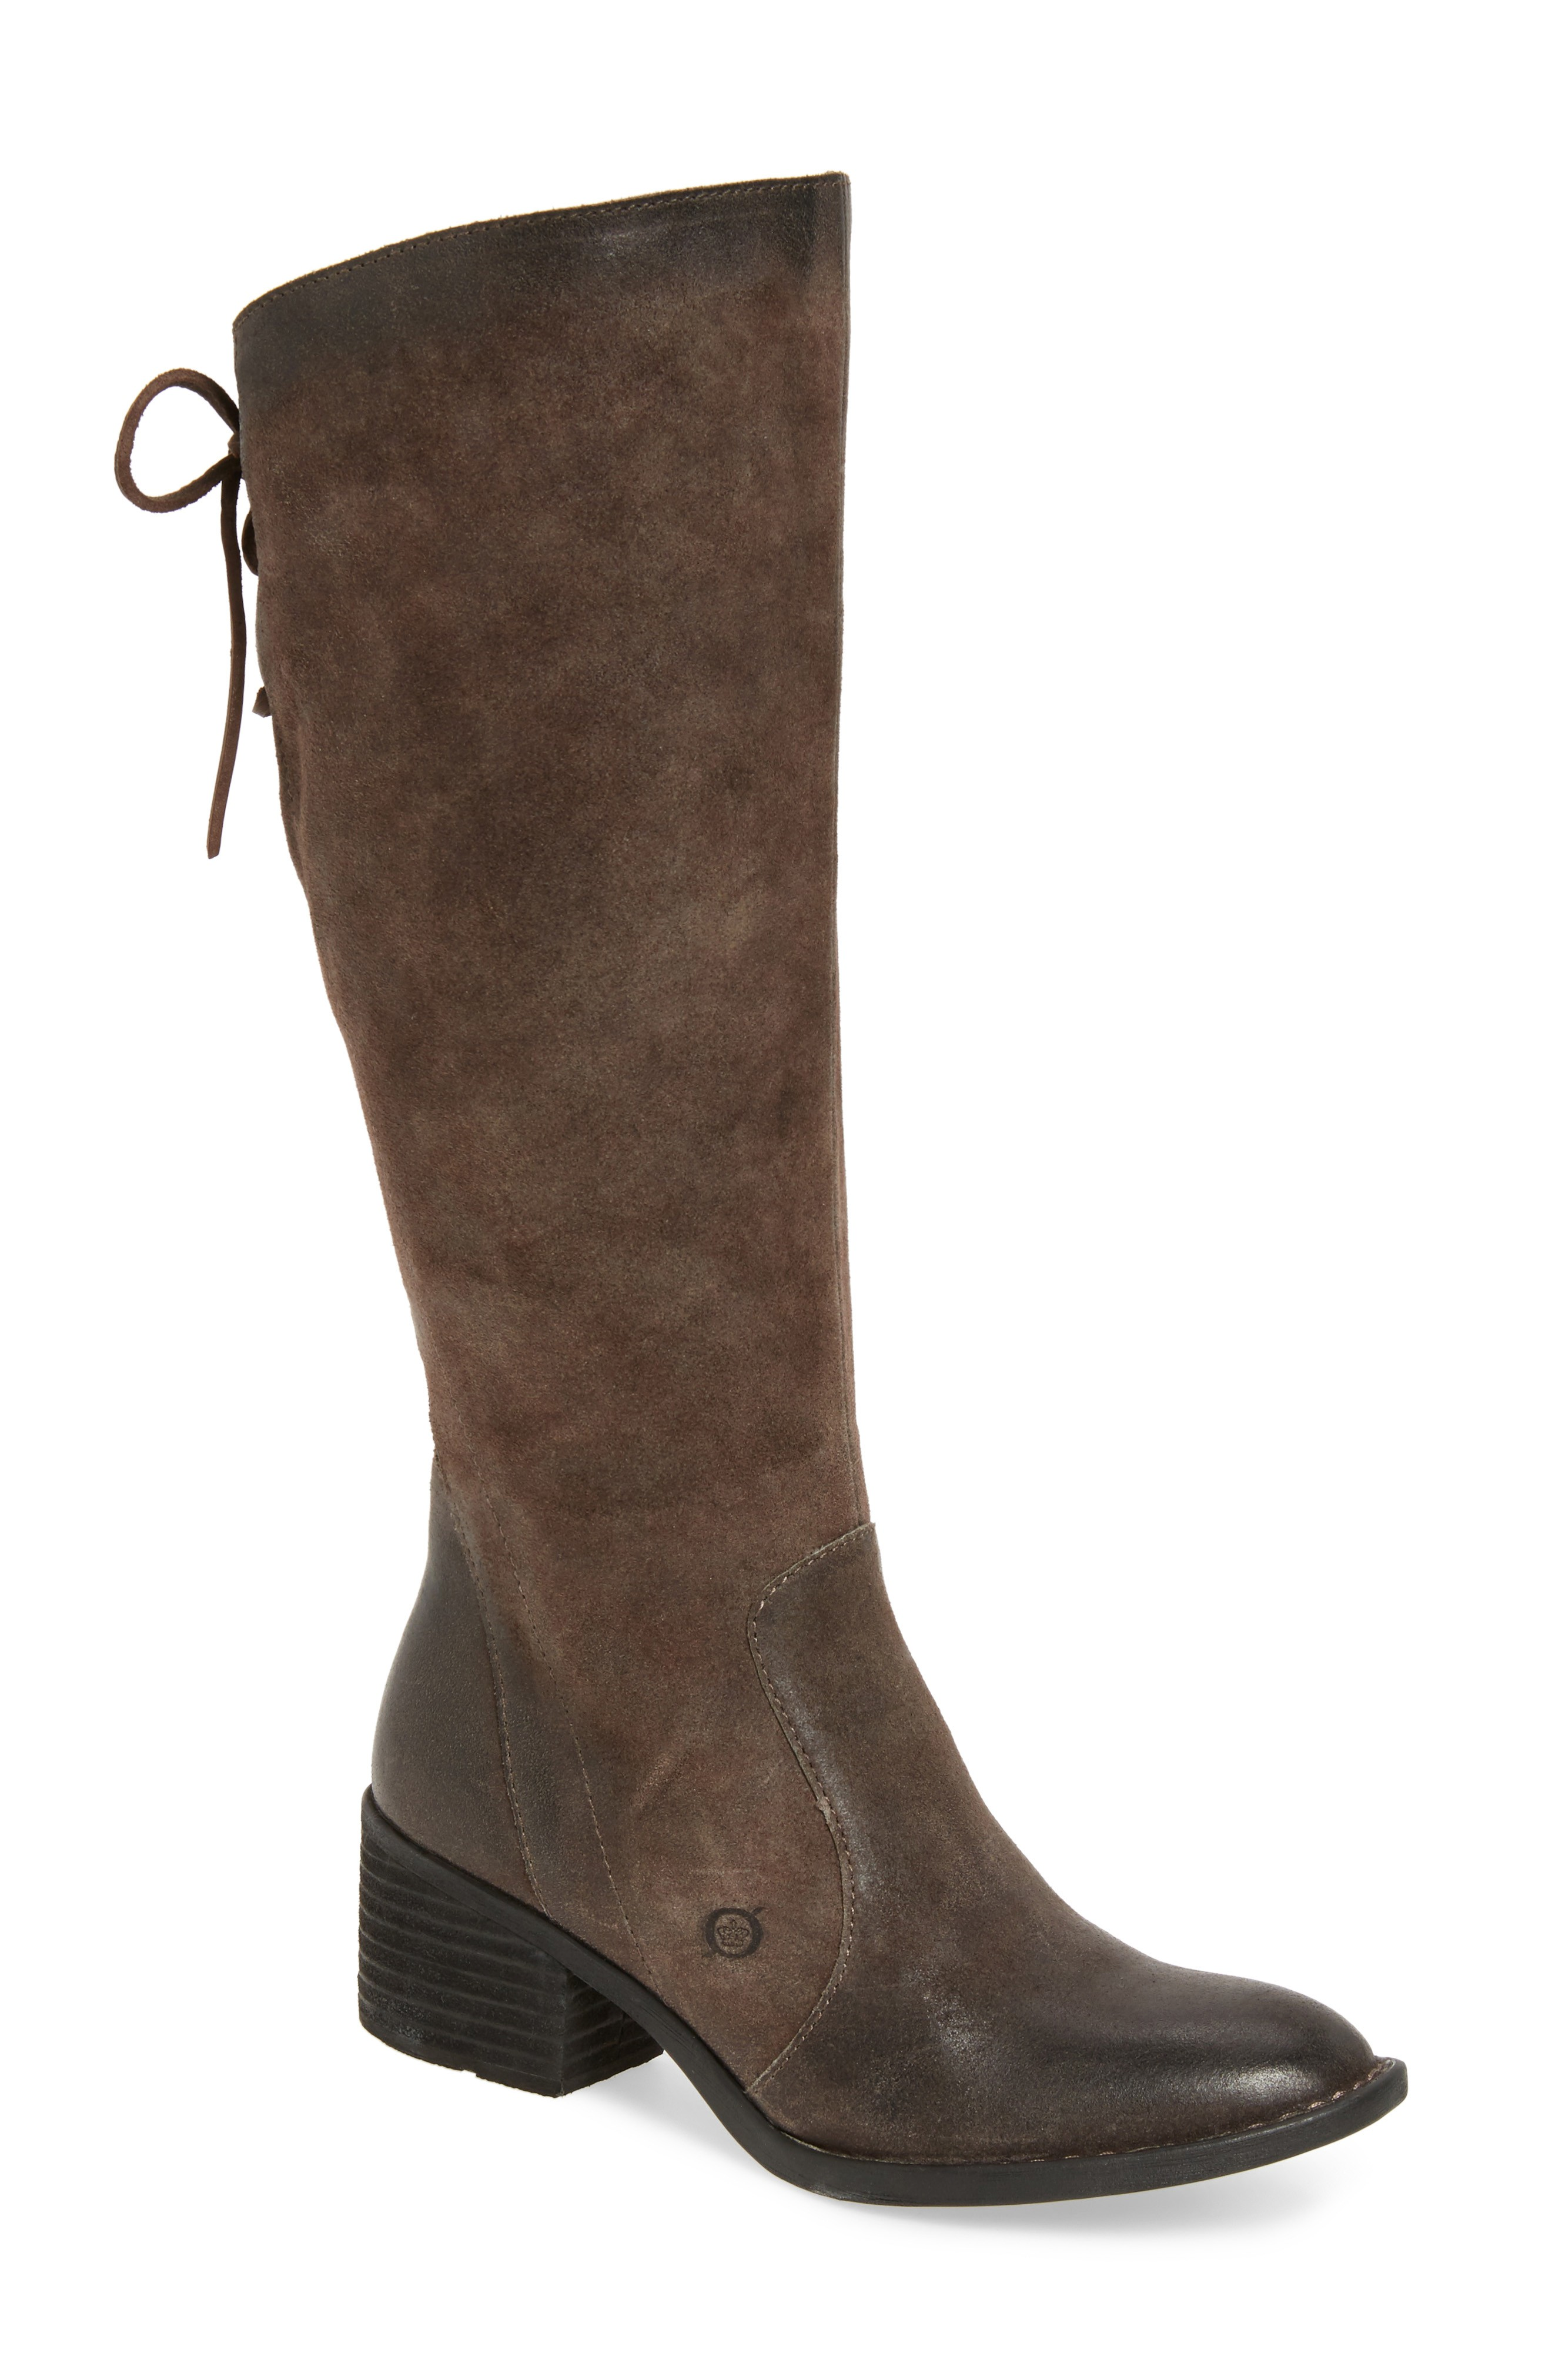 leather boots for women børn felicia knee high